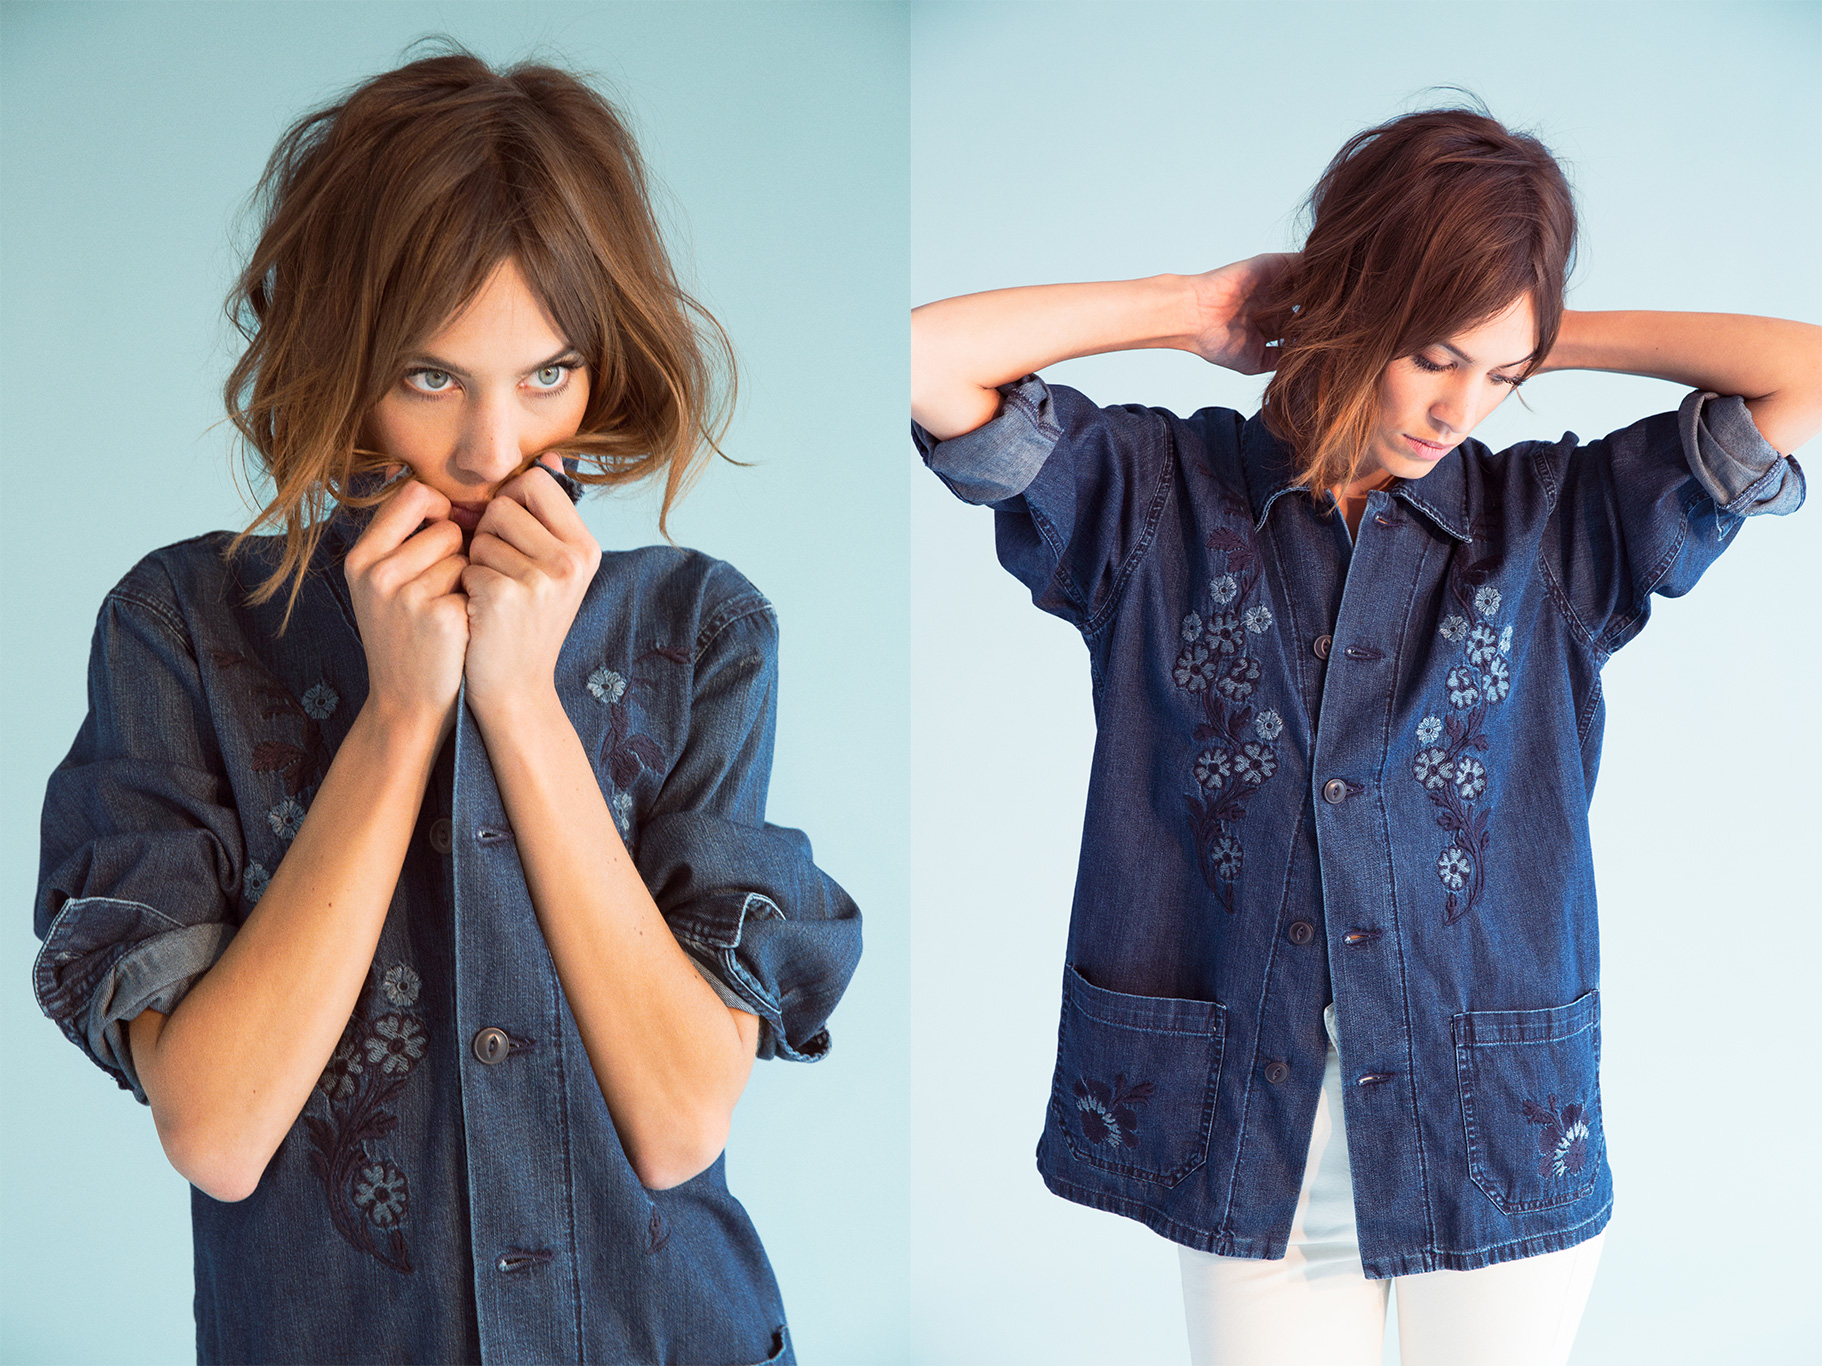 alexa-chung-ag-jeans-collab-interview-05.jpg